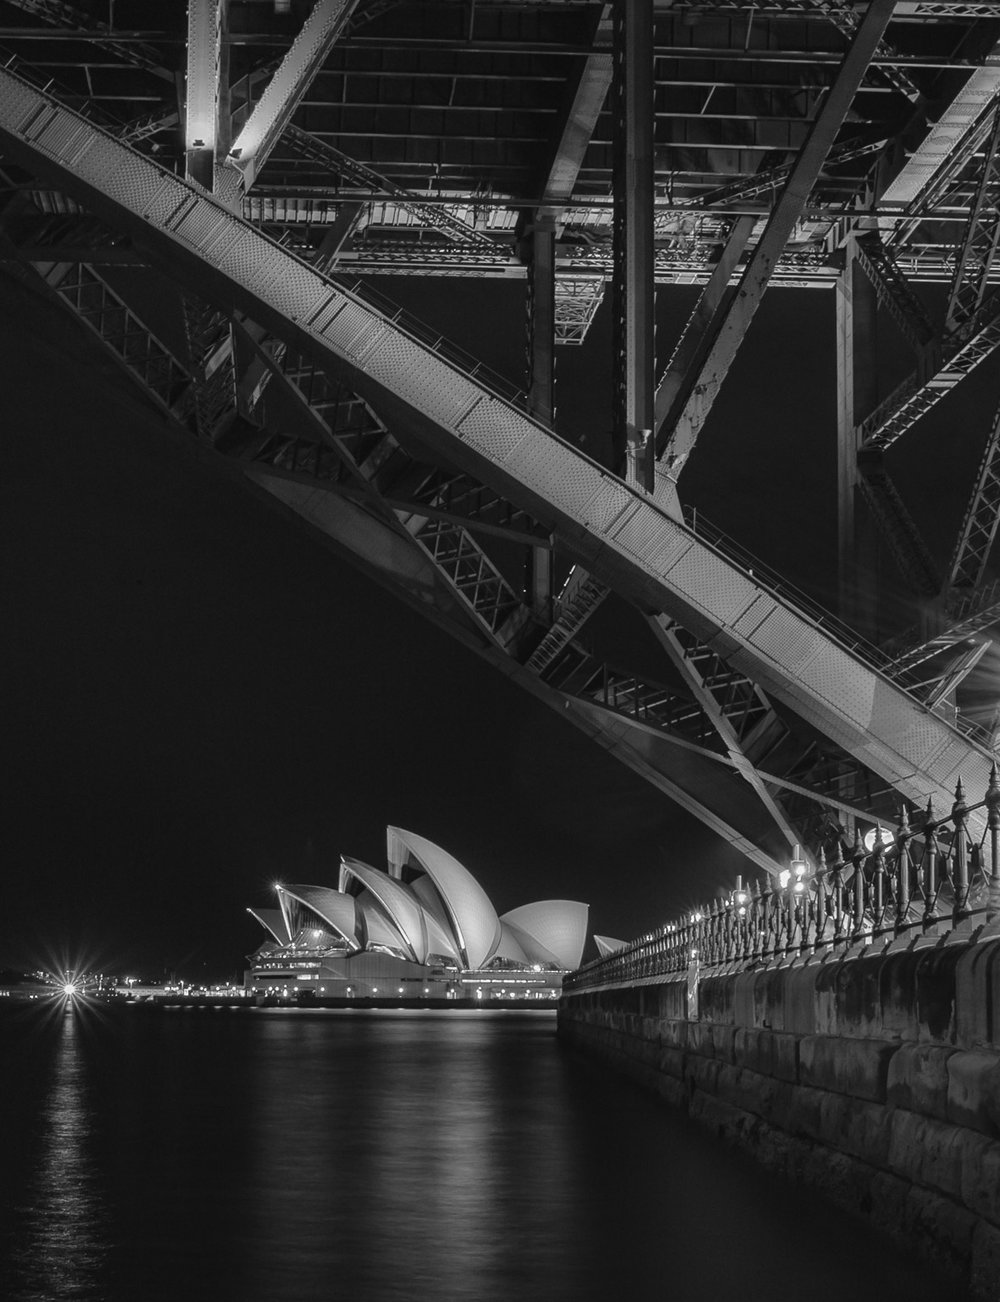 Opera House bw night (1 of 1).jpg